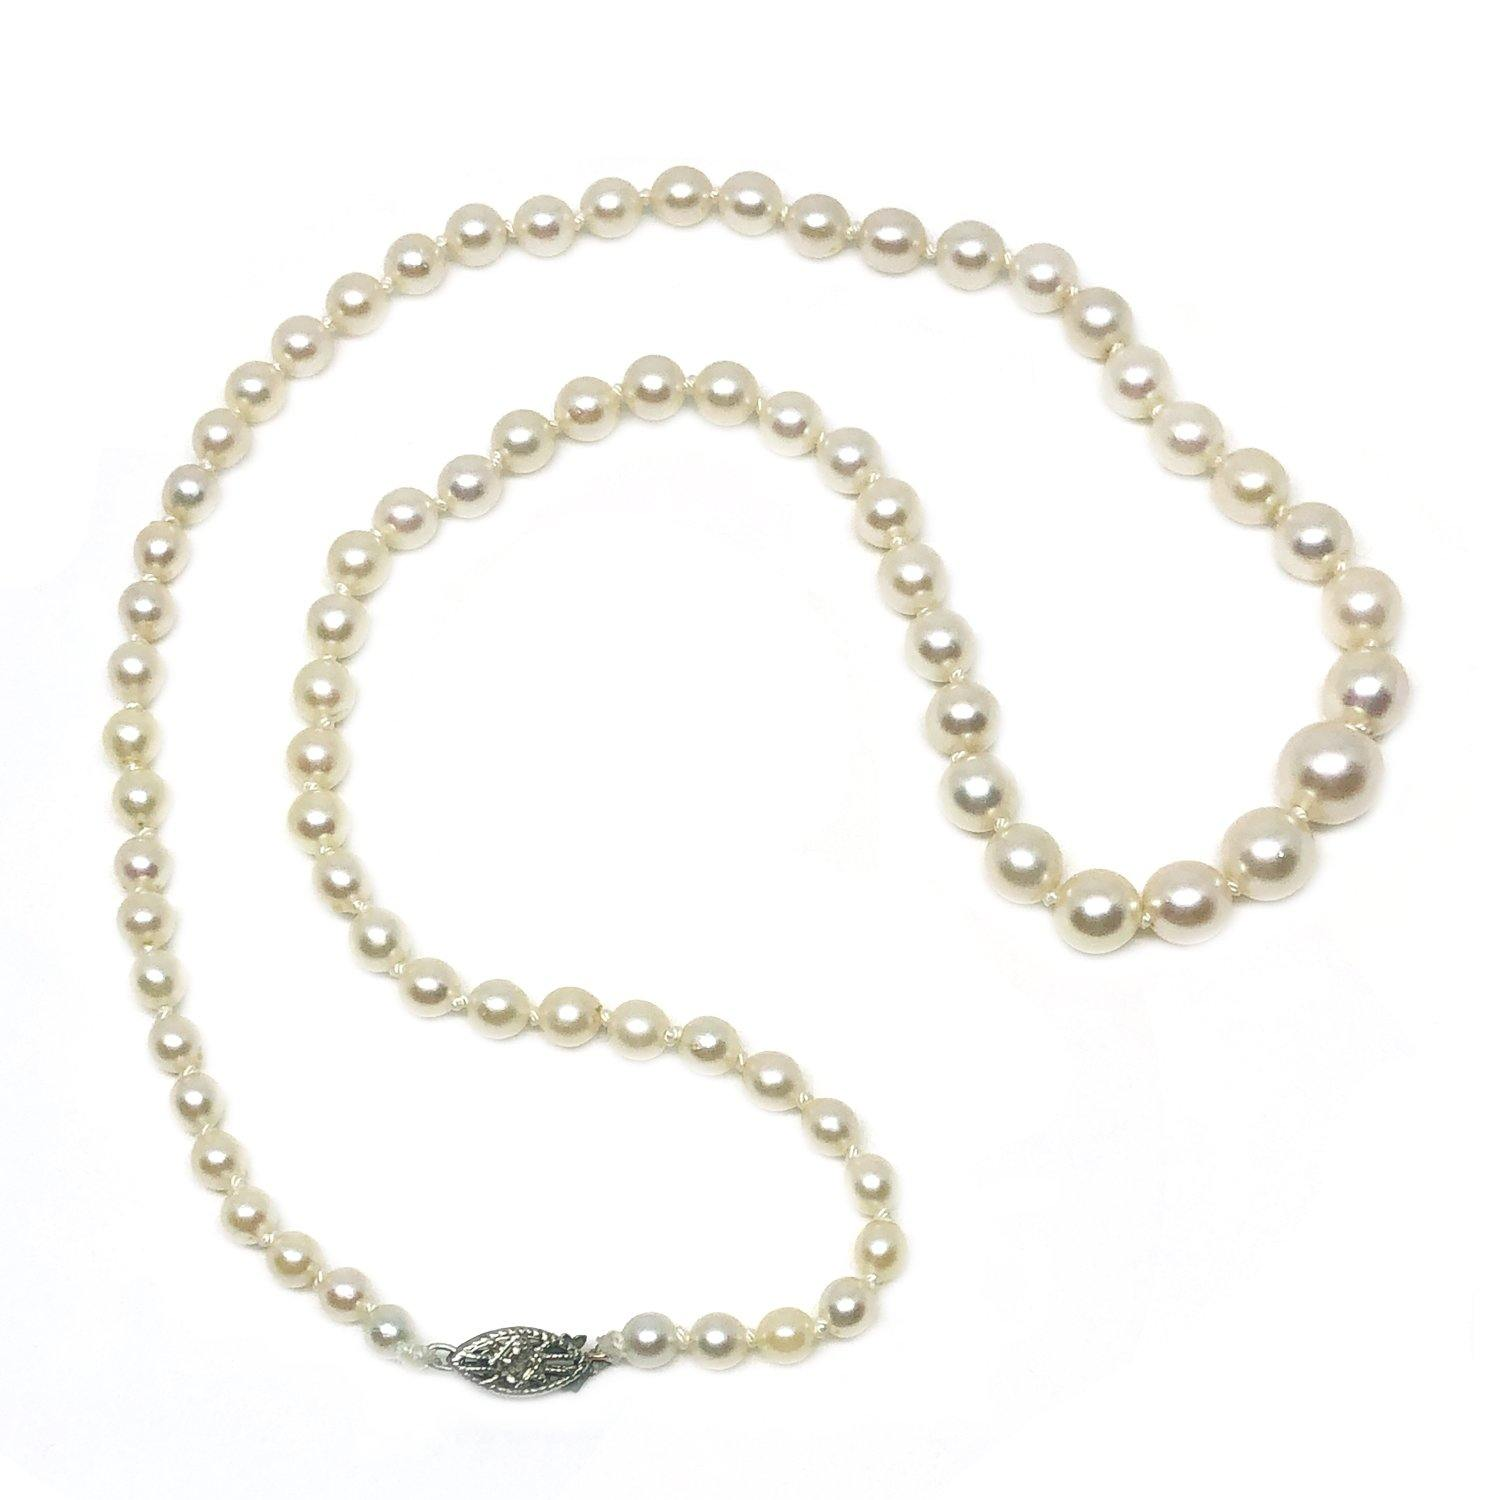 Diamond Graduated Japanese Saltwater Cultured Akoya Pearl Strand - 10K White Gold 18.50 Inch - Vintage Valuable Pearls